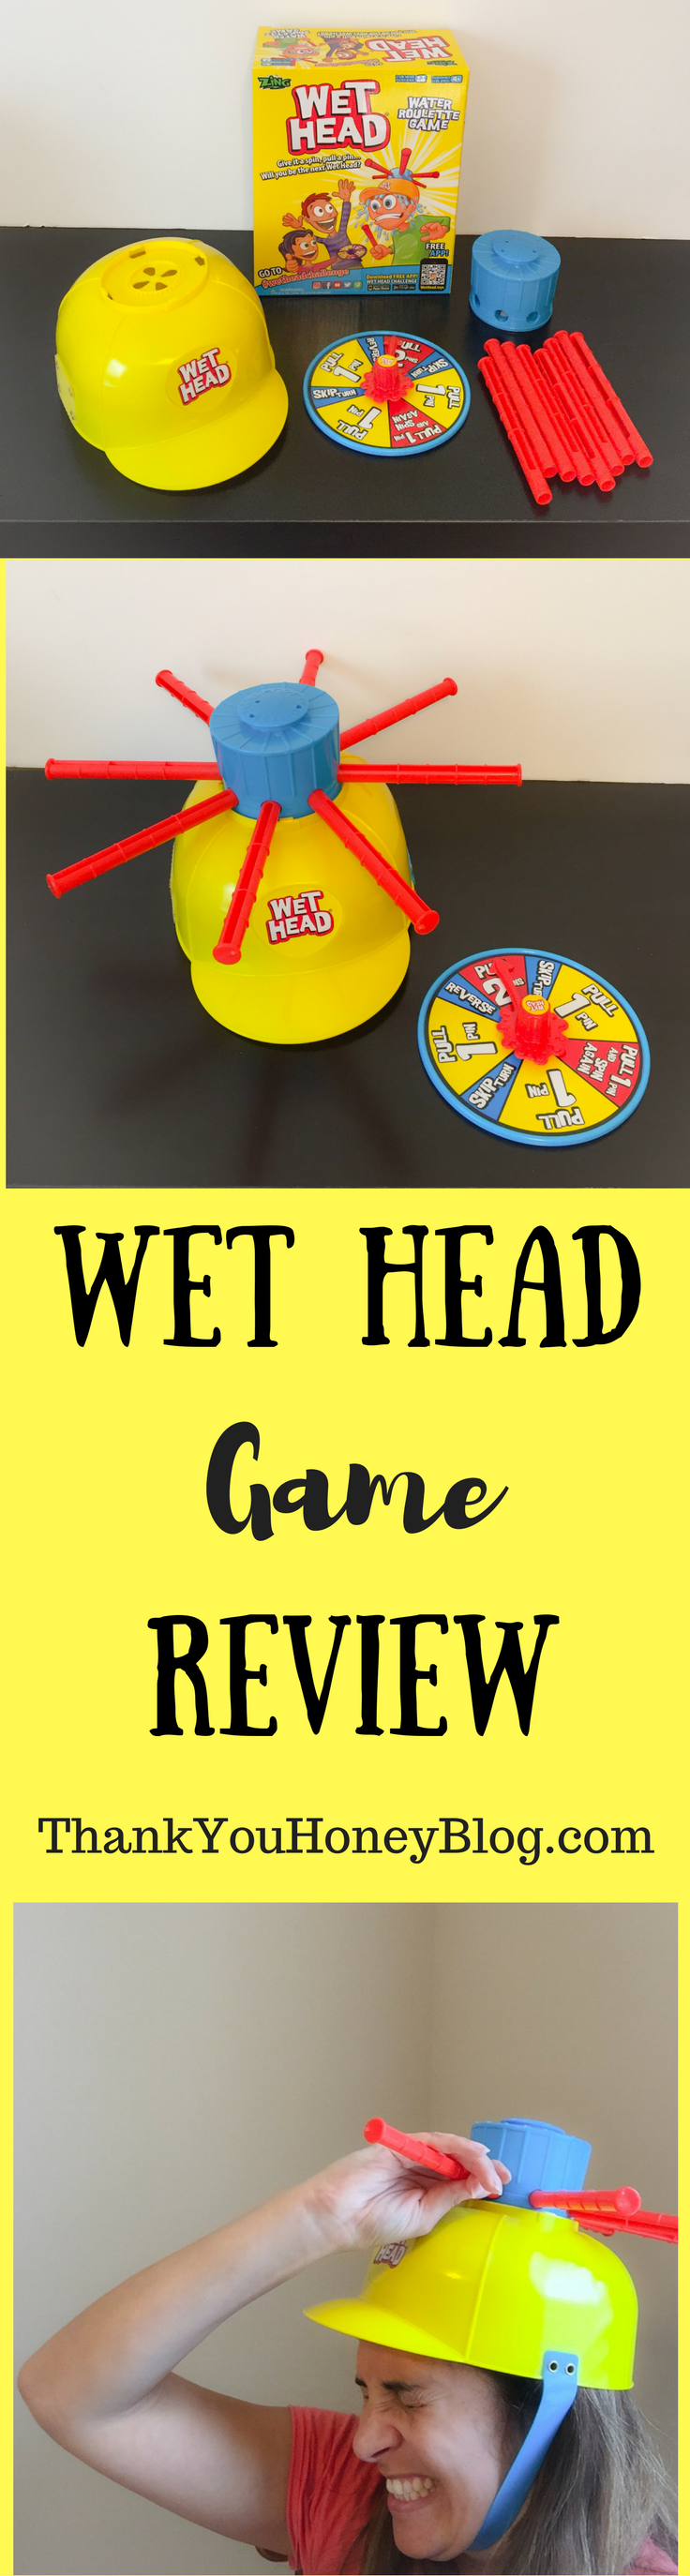 Wet Head Game Review